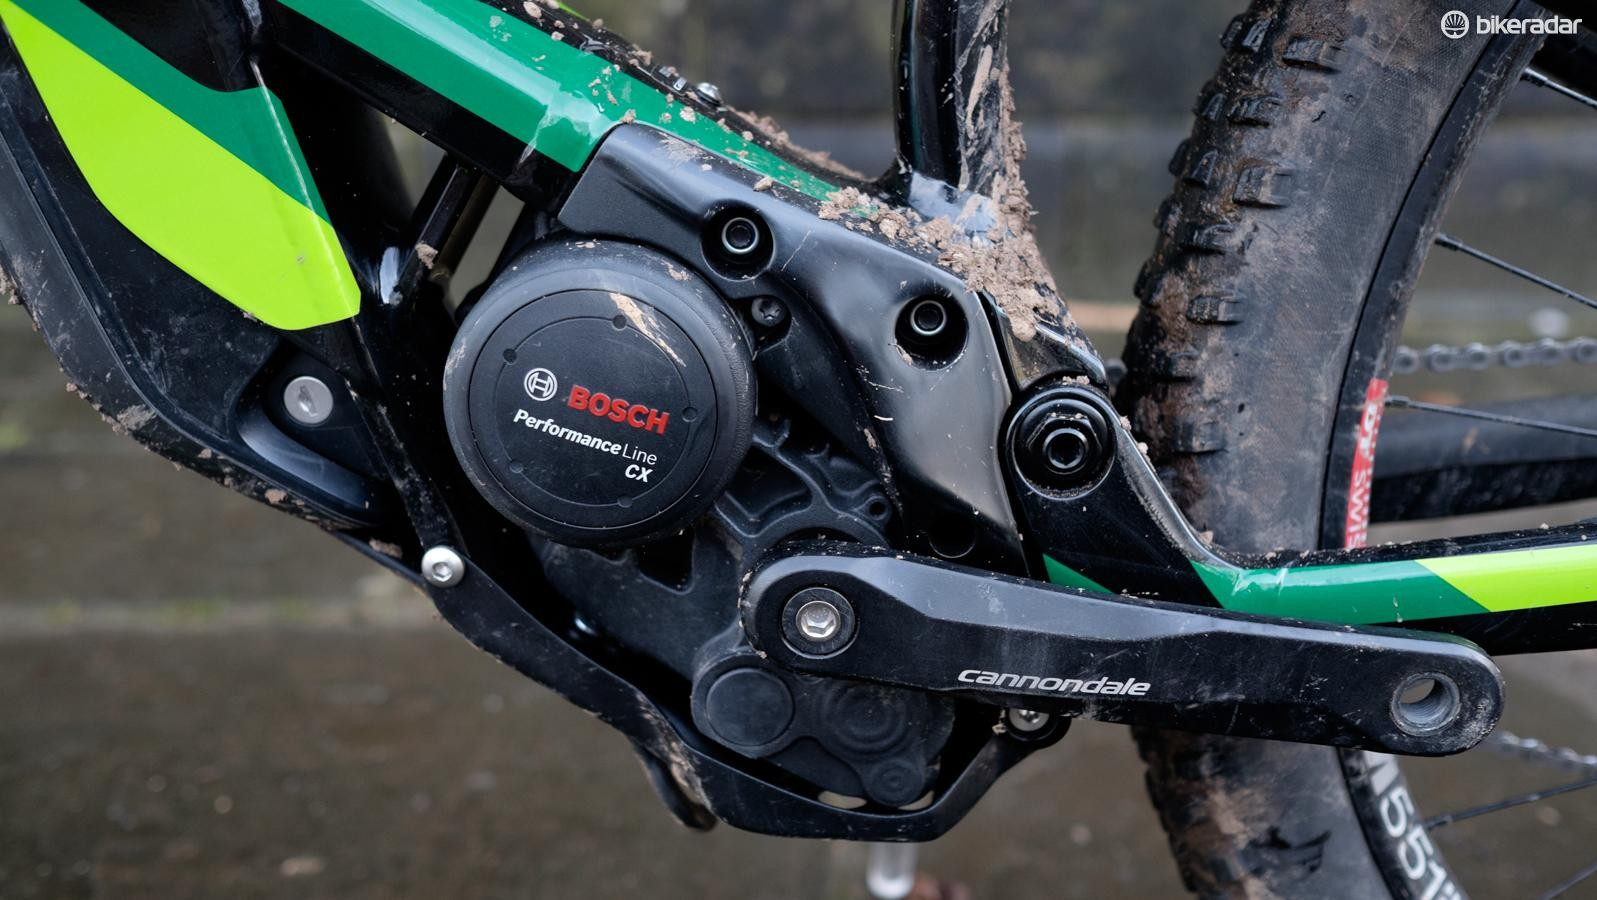 Bosch's Performance Line CX motor is mounted at an unusual angle in order to minimise chainstay length and optimise the frame's suspension pivot placement